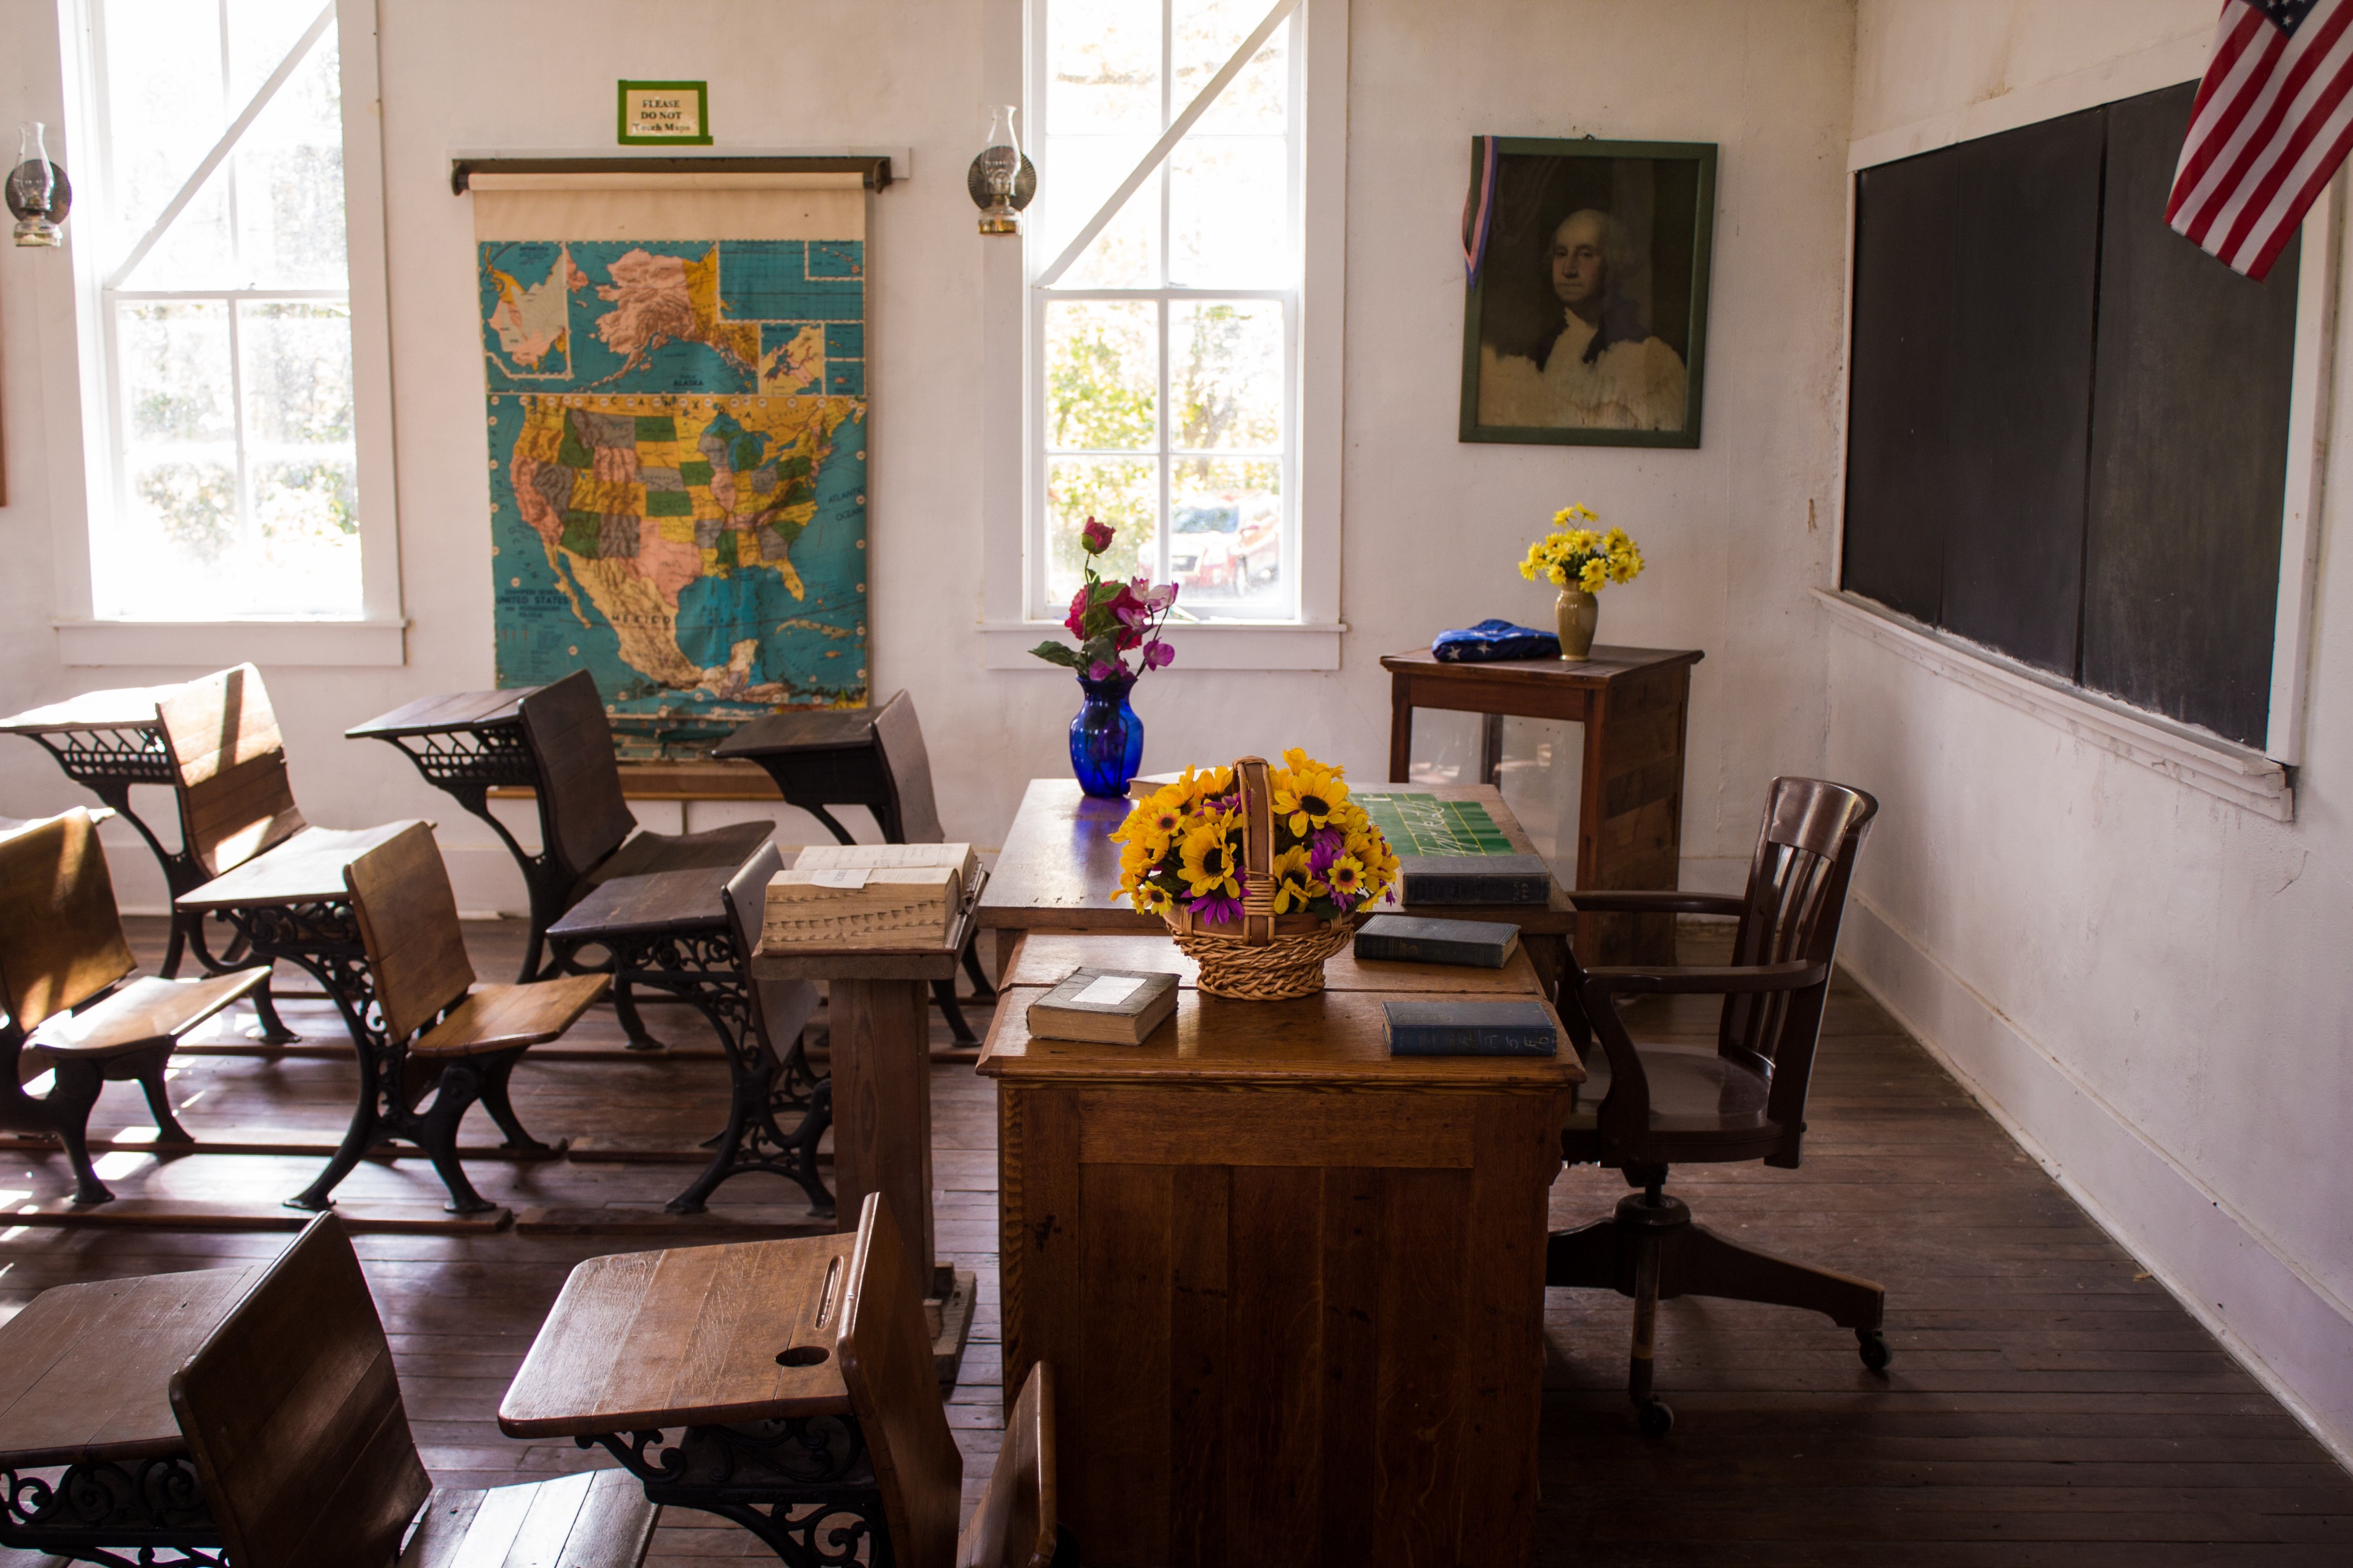 An empty classroom with wooden desks and colorful flowers on the teacher's desk.